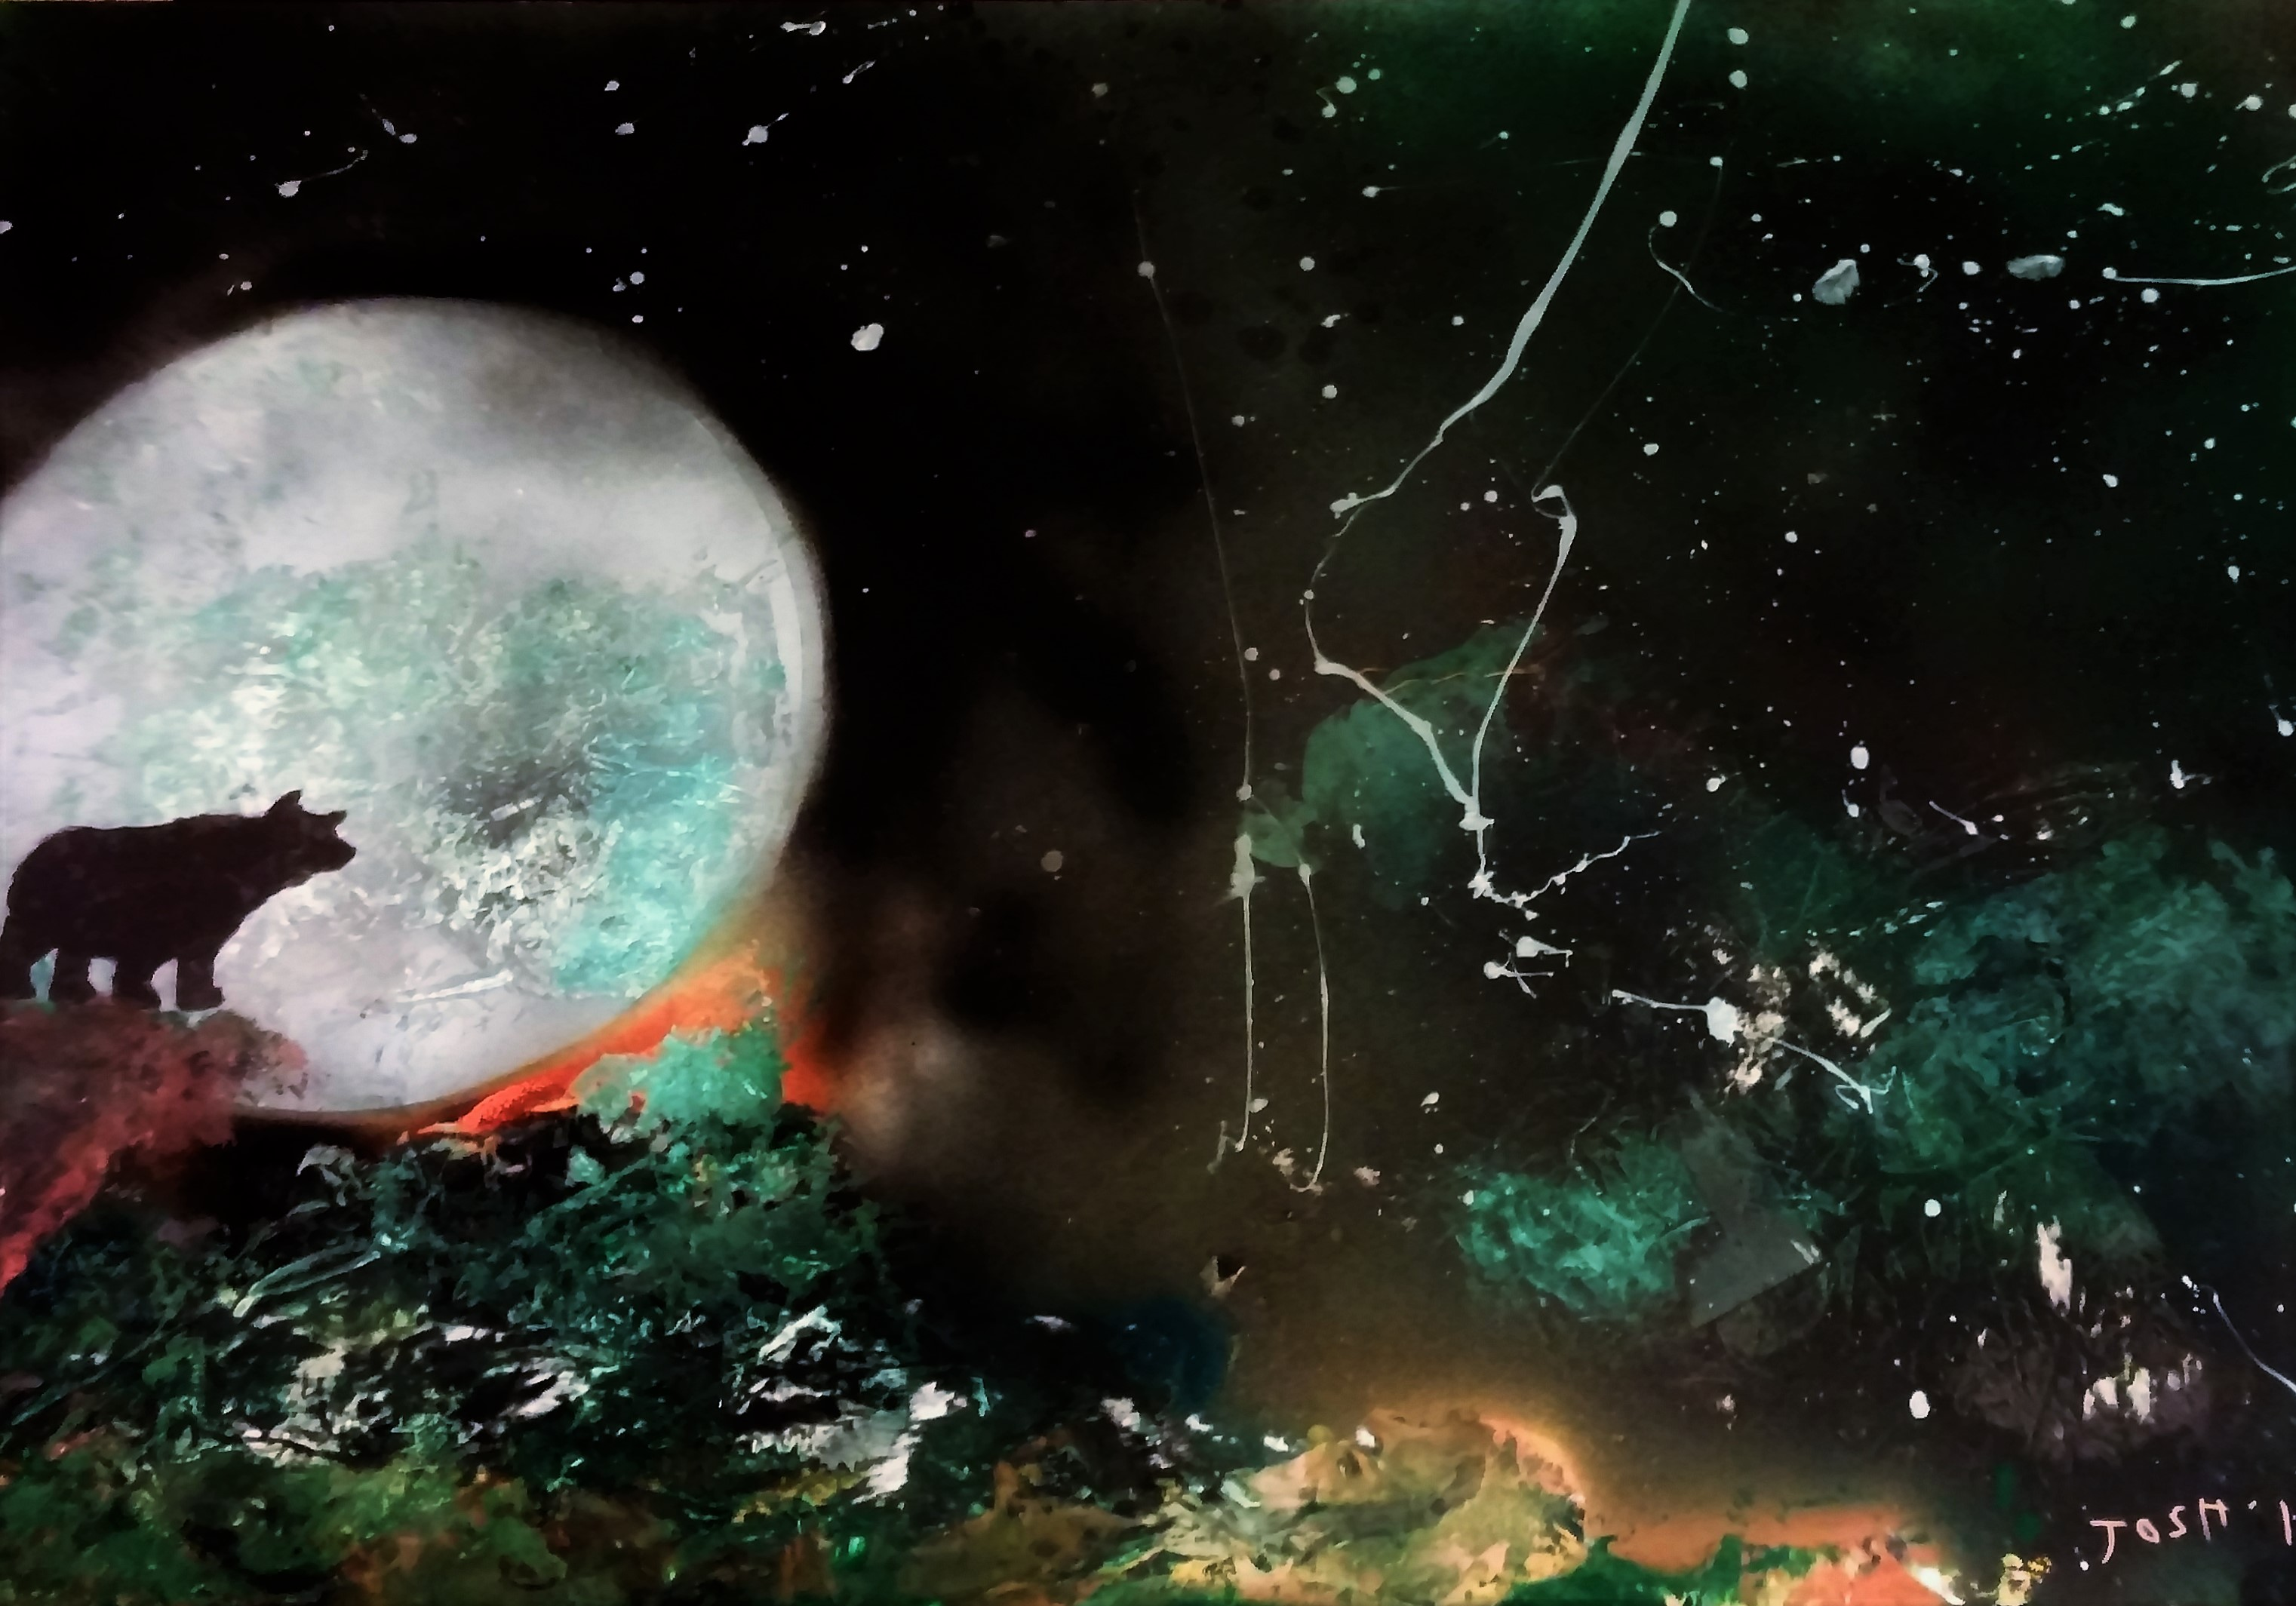 Bear and Moon, special request...Search art3000 site to view